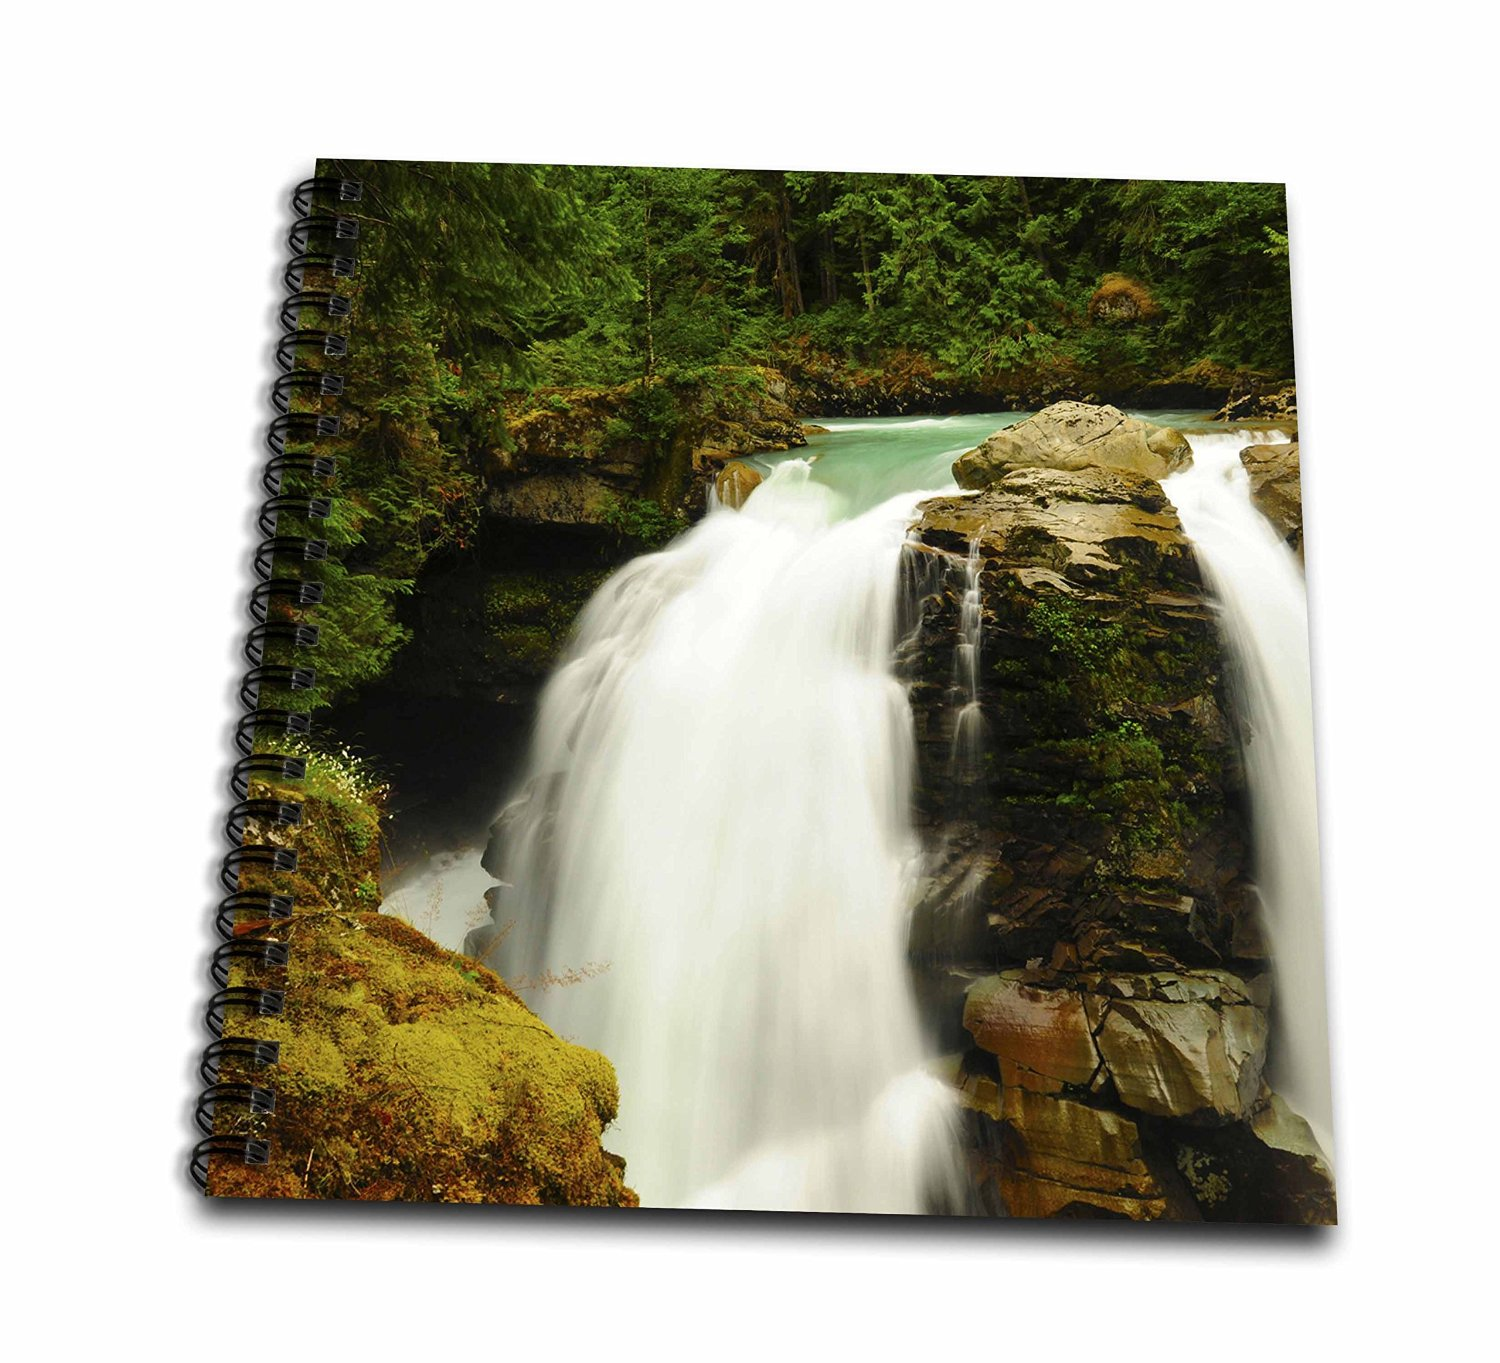 Danita Delimont - Waterfalls - Hooksack Waterfalls, Washington, USA - US48 MHE0032 - Michel Hersen - Memory Book 12 x 12 inch (db_148375_2)